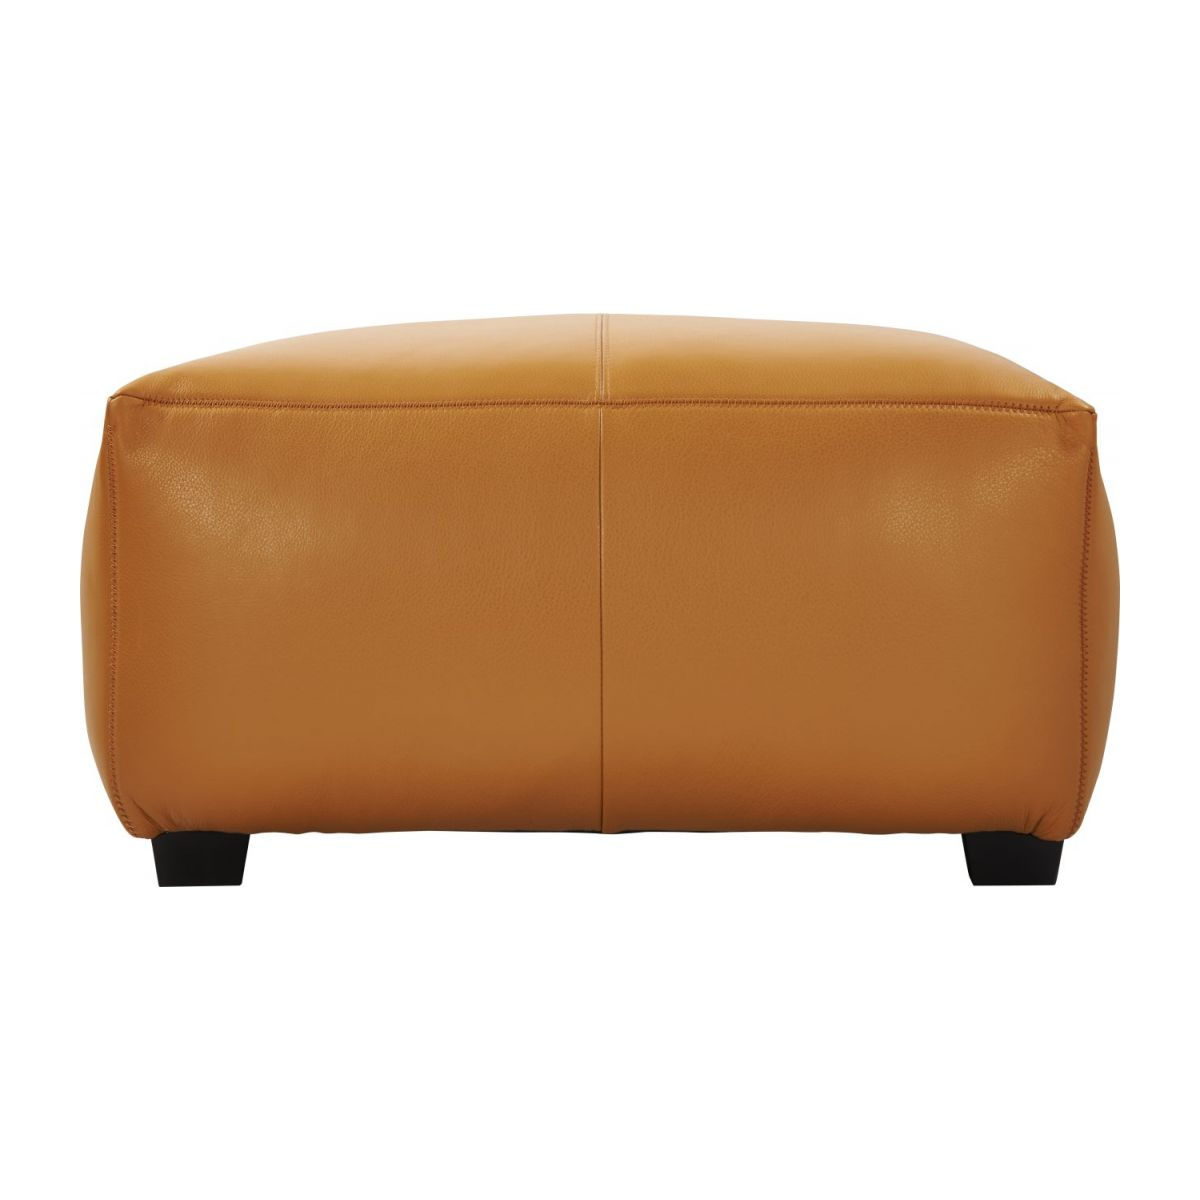 Footstool in Savoy semi-aniline leather, cognac n°5